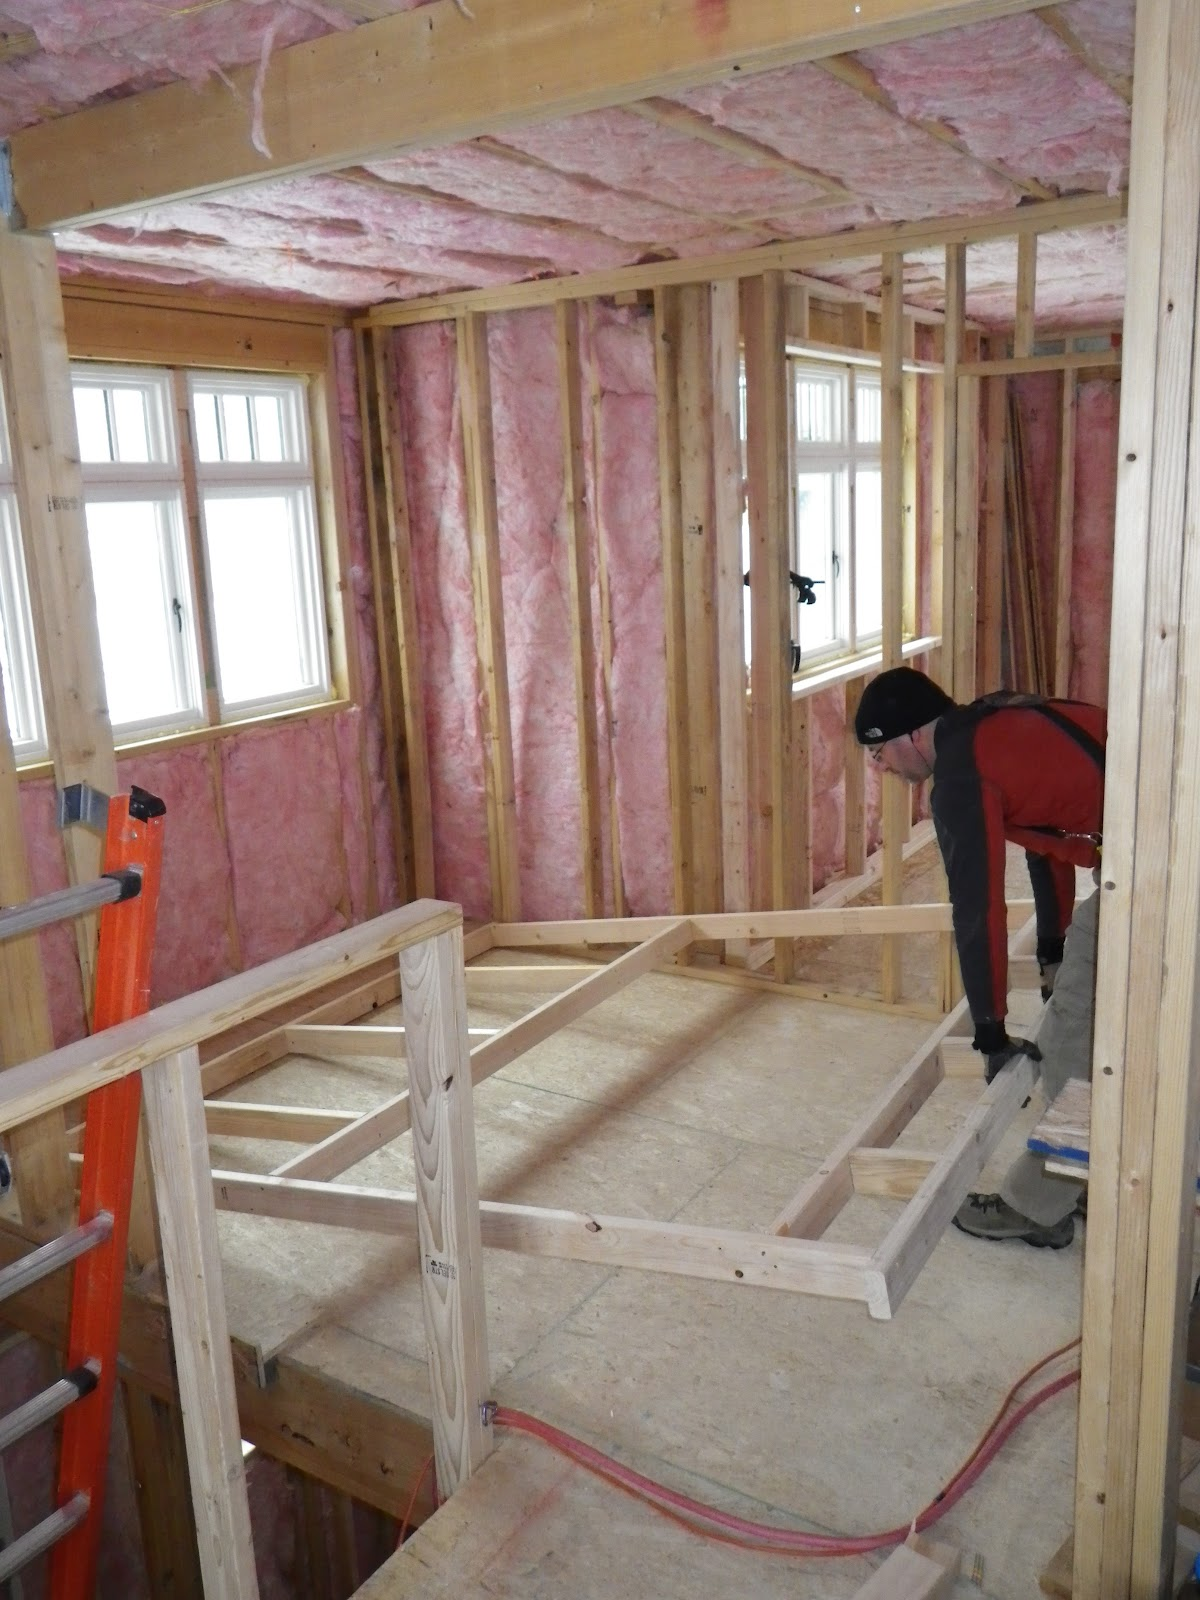 Mr blanding 39 s dream house super insulation for What insulation to use in 2x6 walls